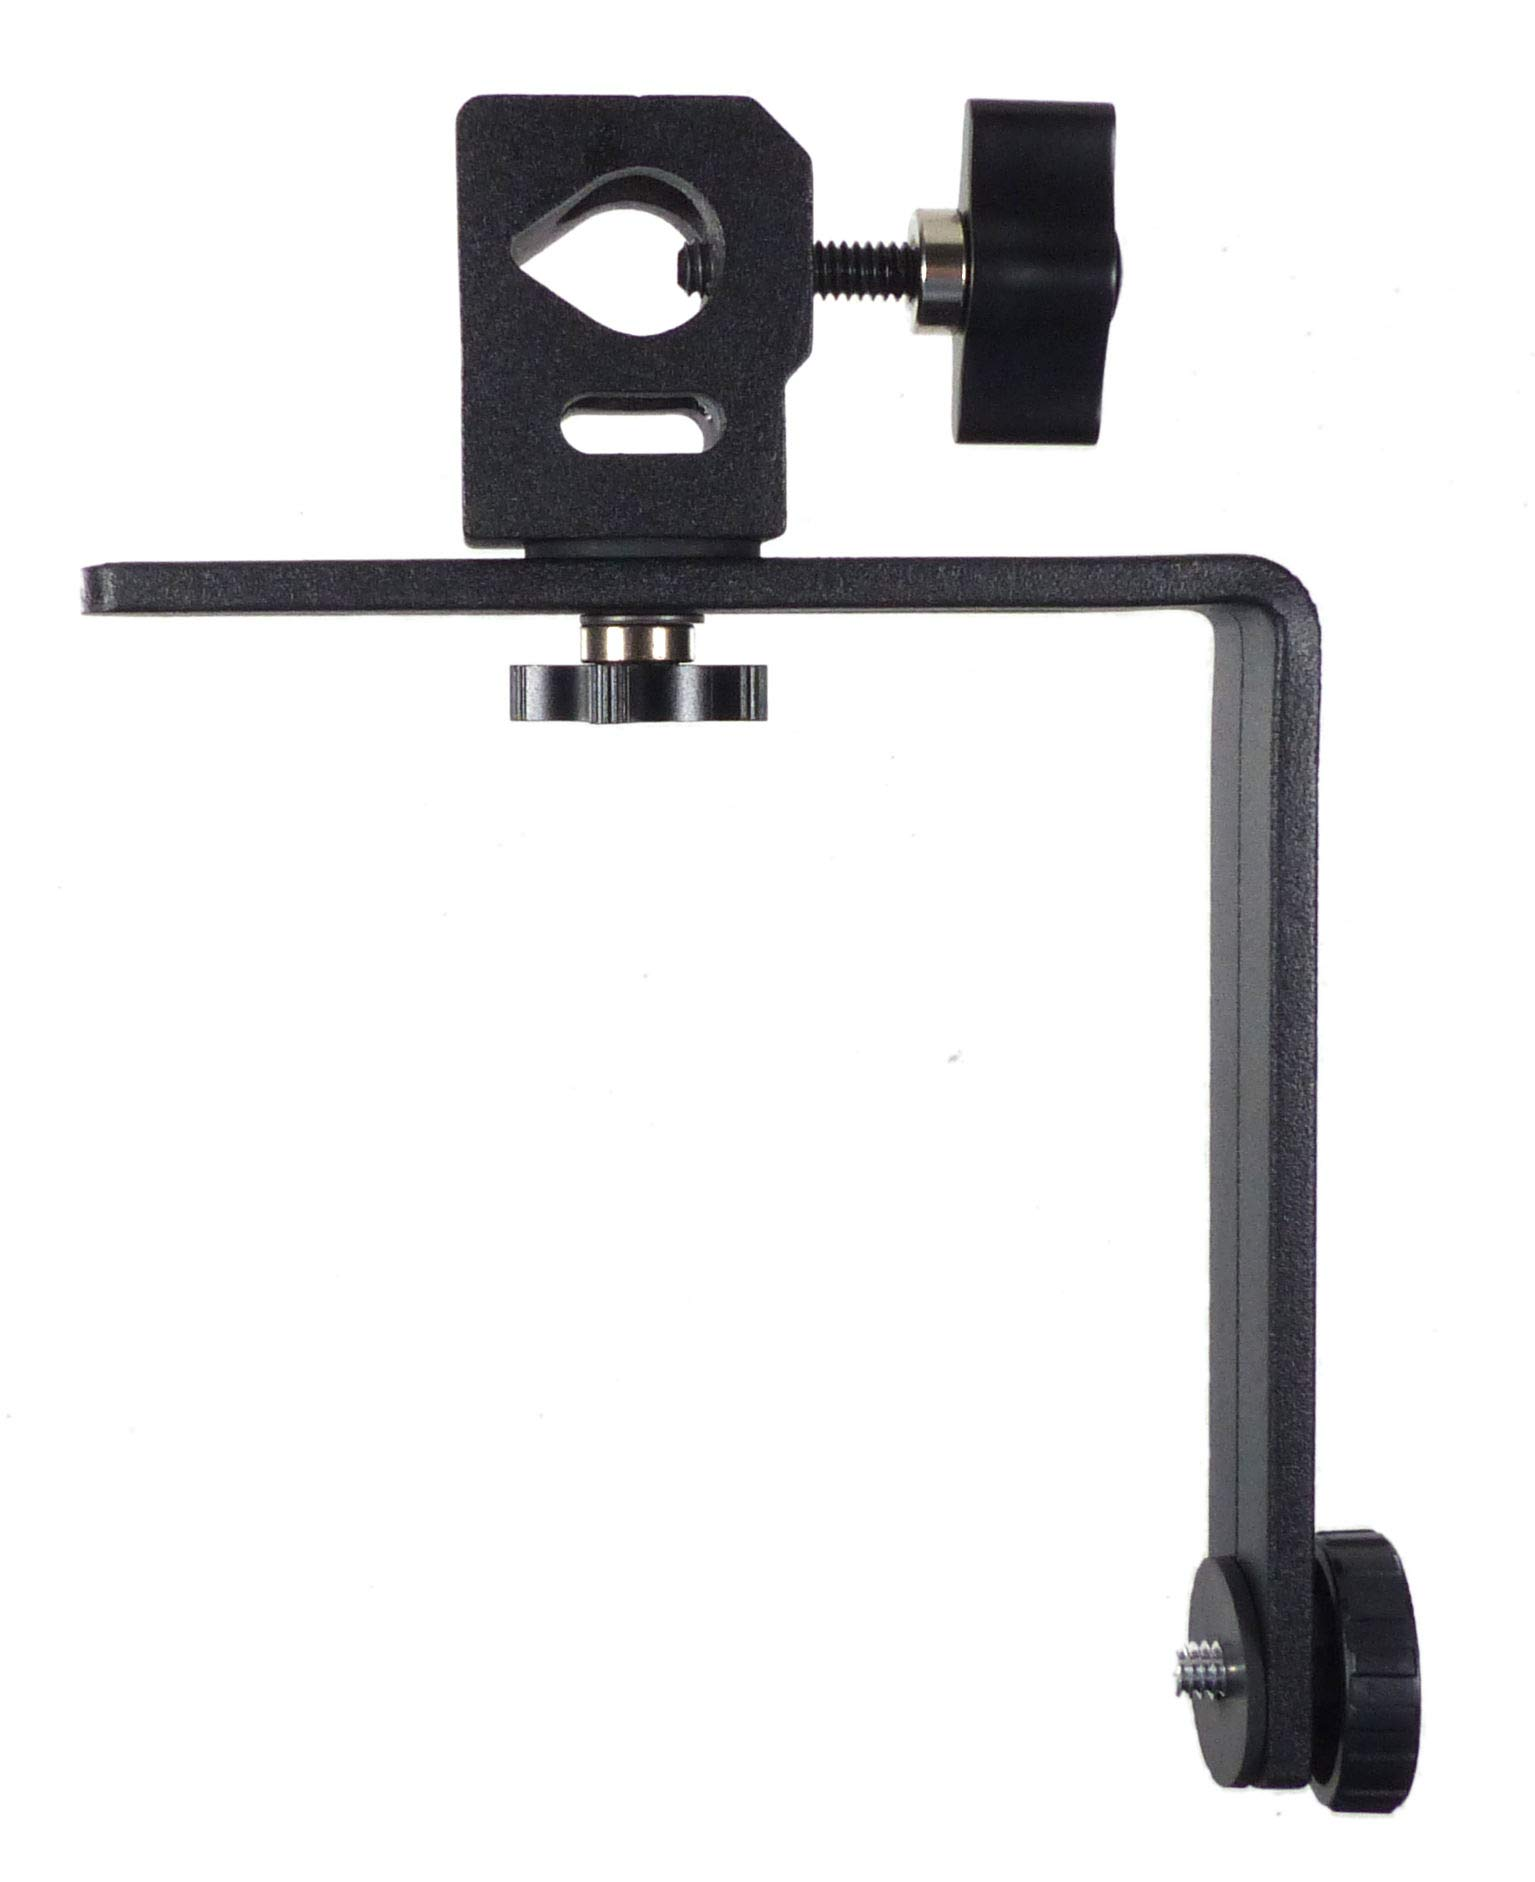 ALZO Suspended Drop Ceiling Face Down Camera Mount L-Bracket by ALZO digital